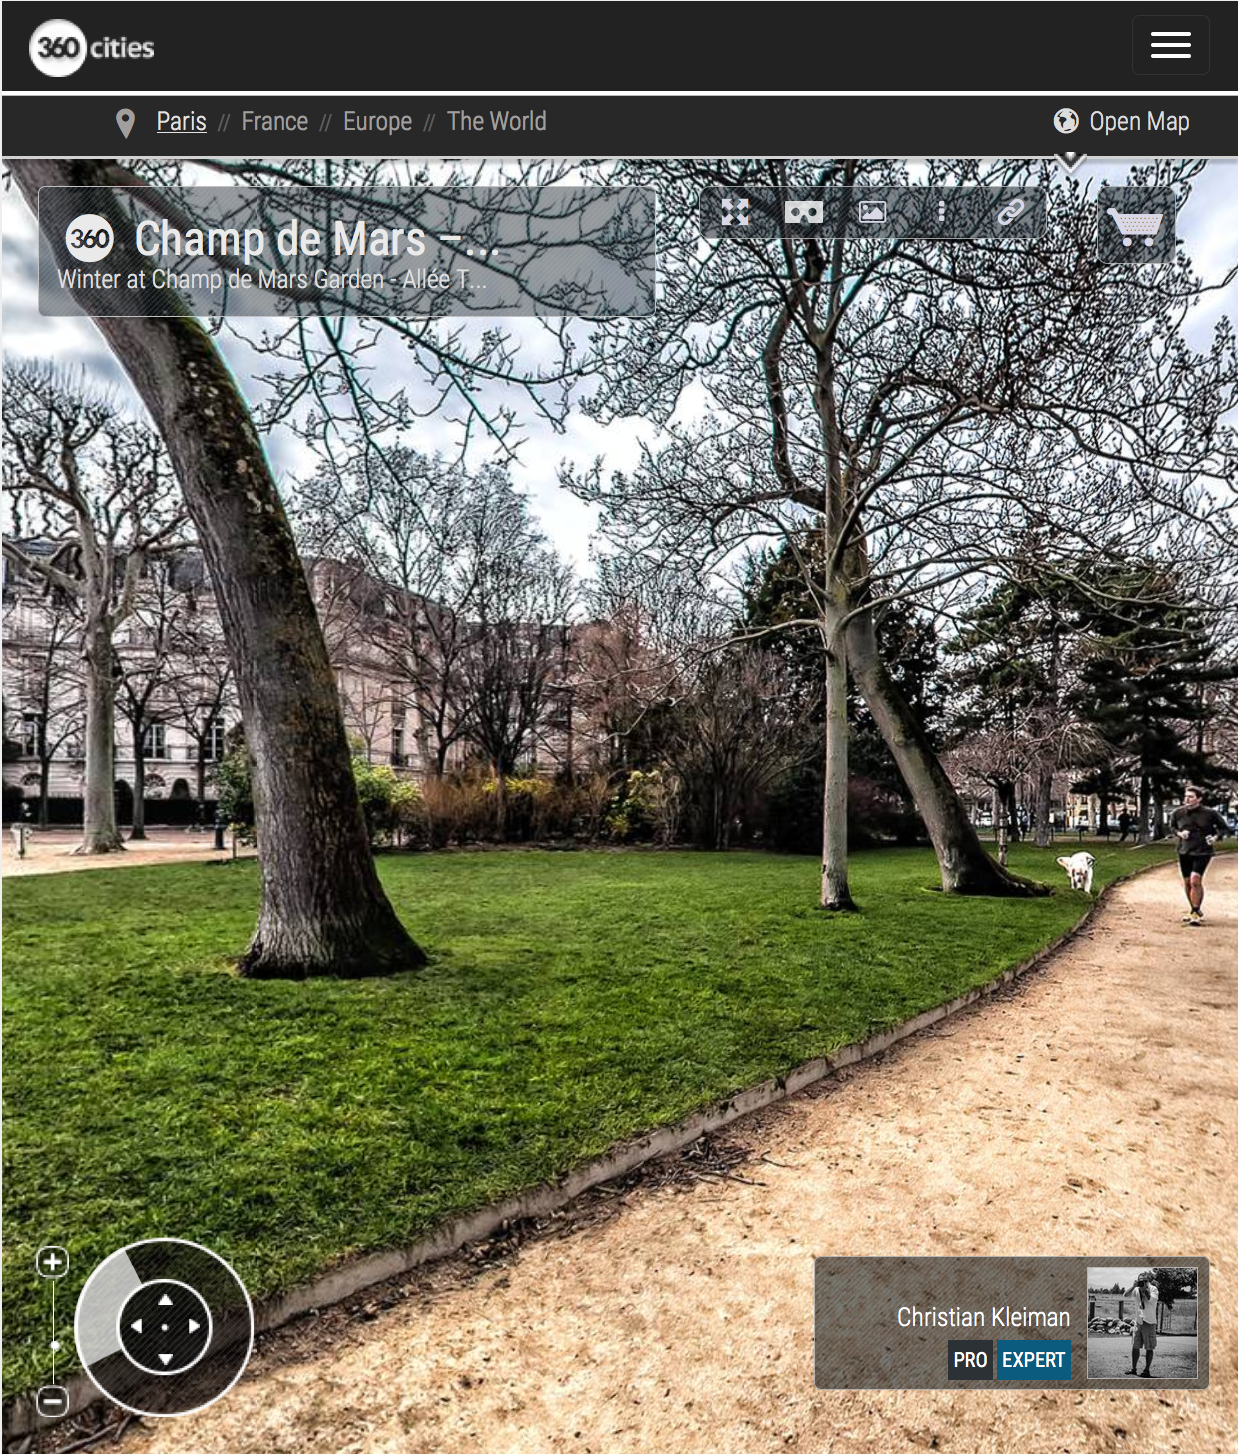 Winter at Champ de Mars Garden Paris - Creative 360 VR Spherical Panoramic Photography from emblematic places in Paris by © Christian Kleiman